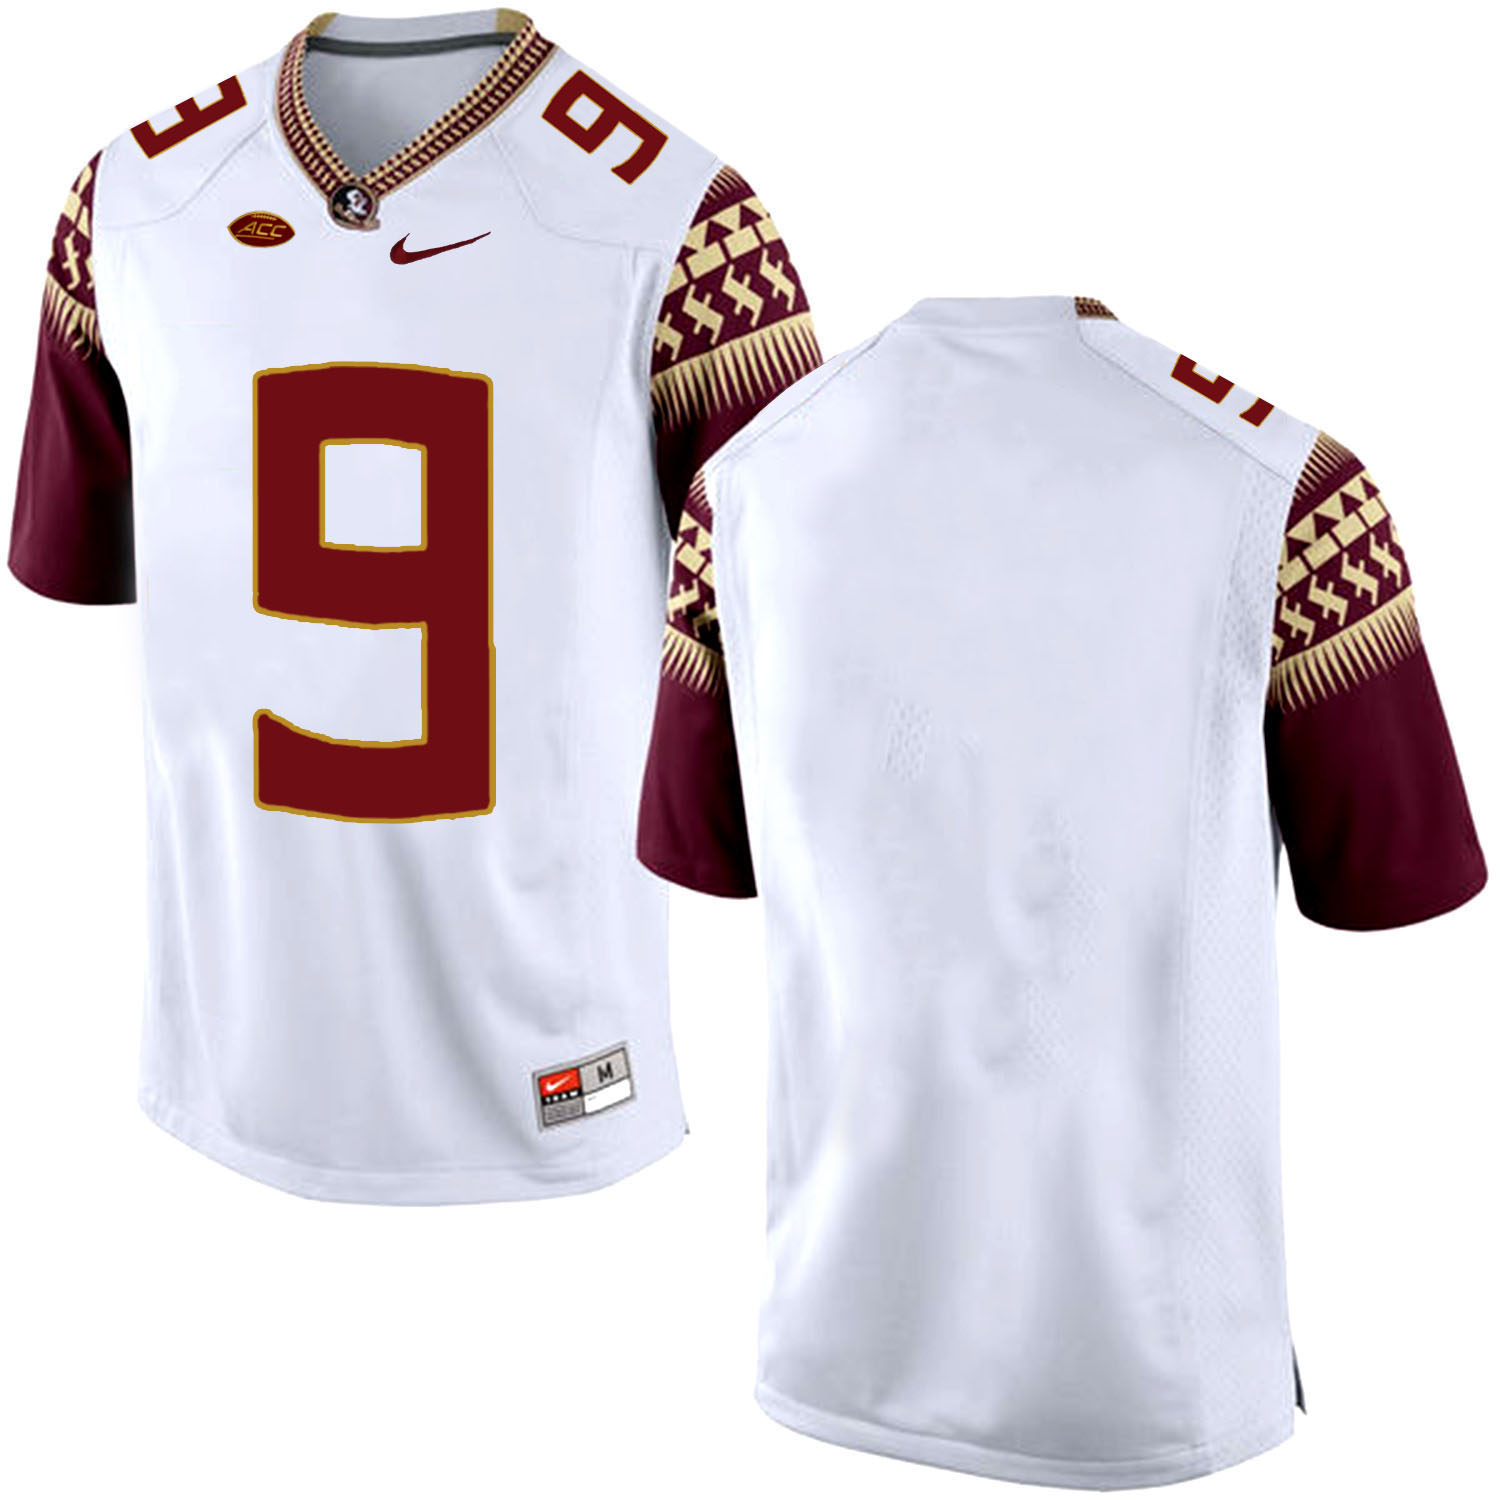 Florida State Seminoles 9 White College Football Jersey